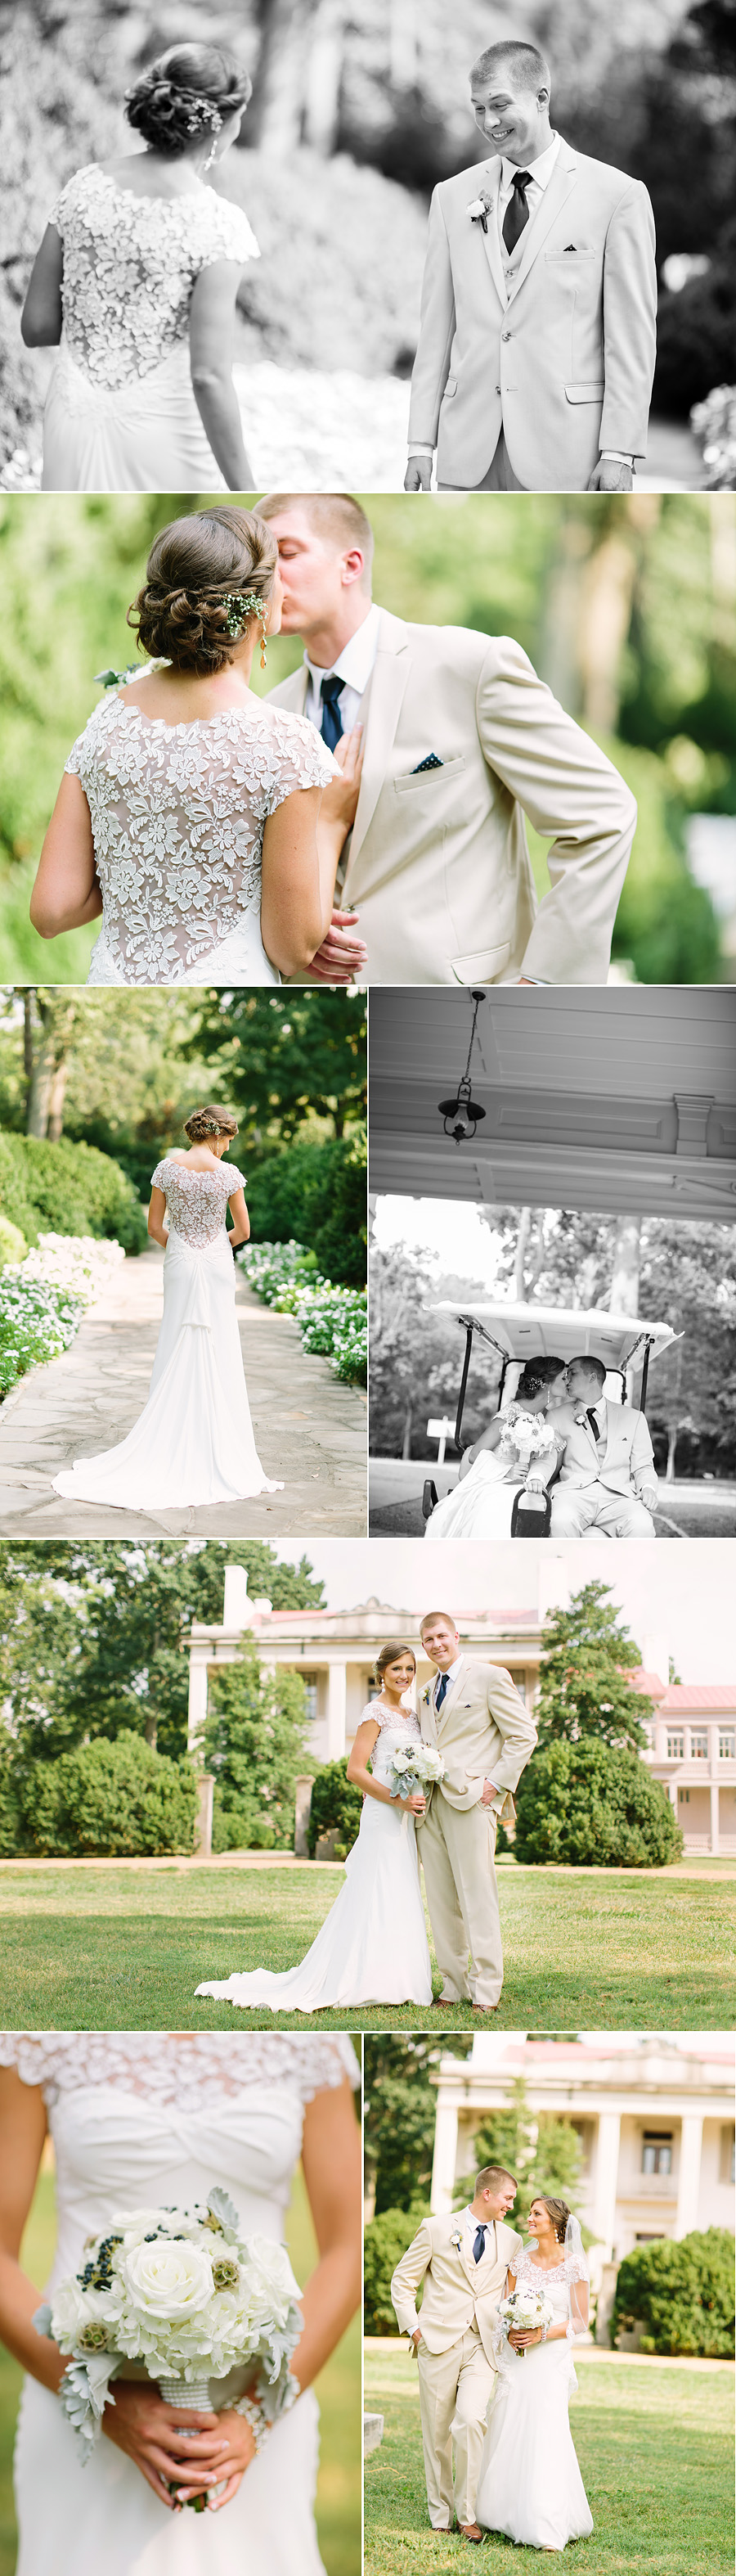 Belle_Meade_Plantation_Wedding_2